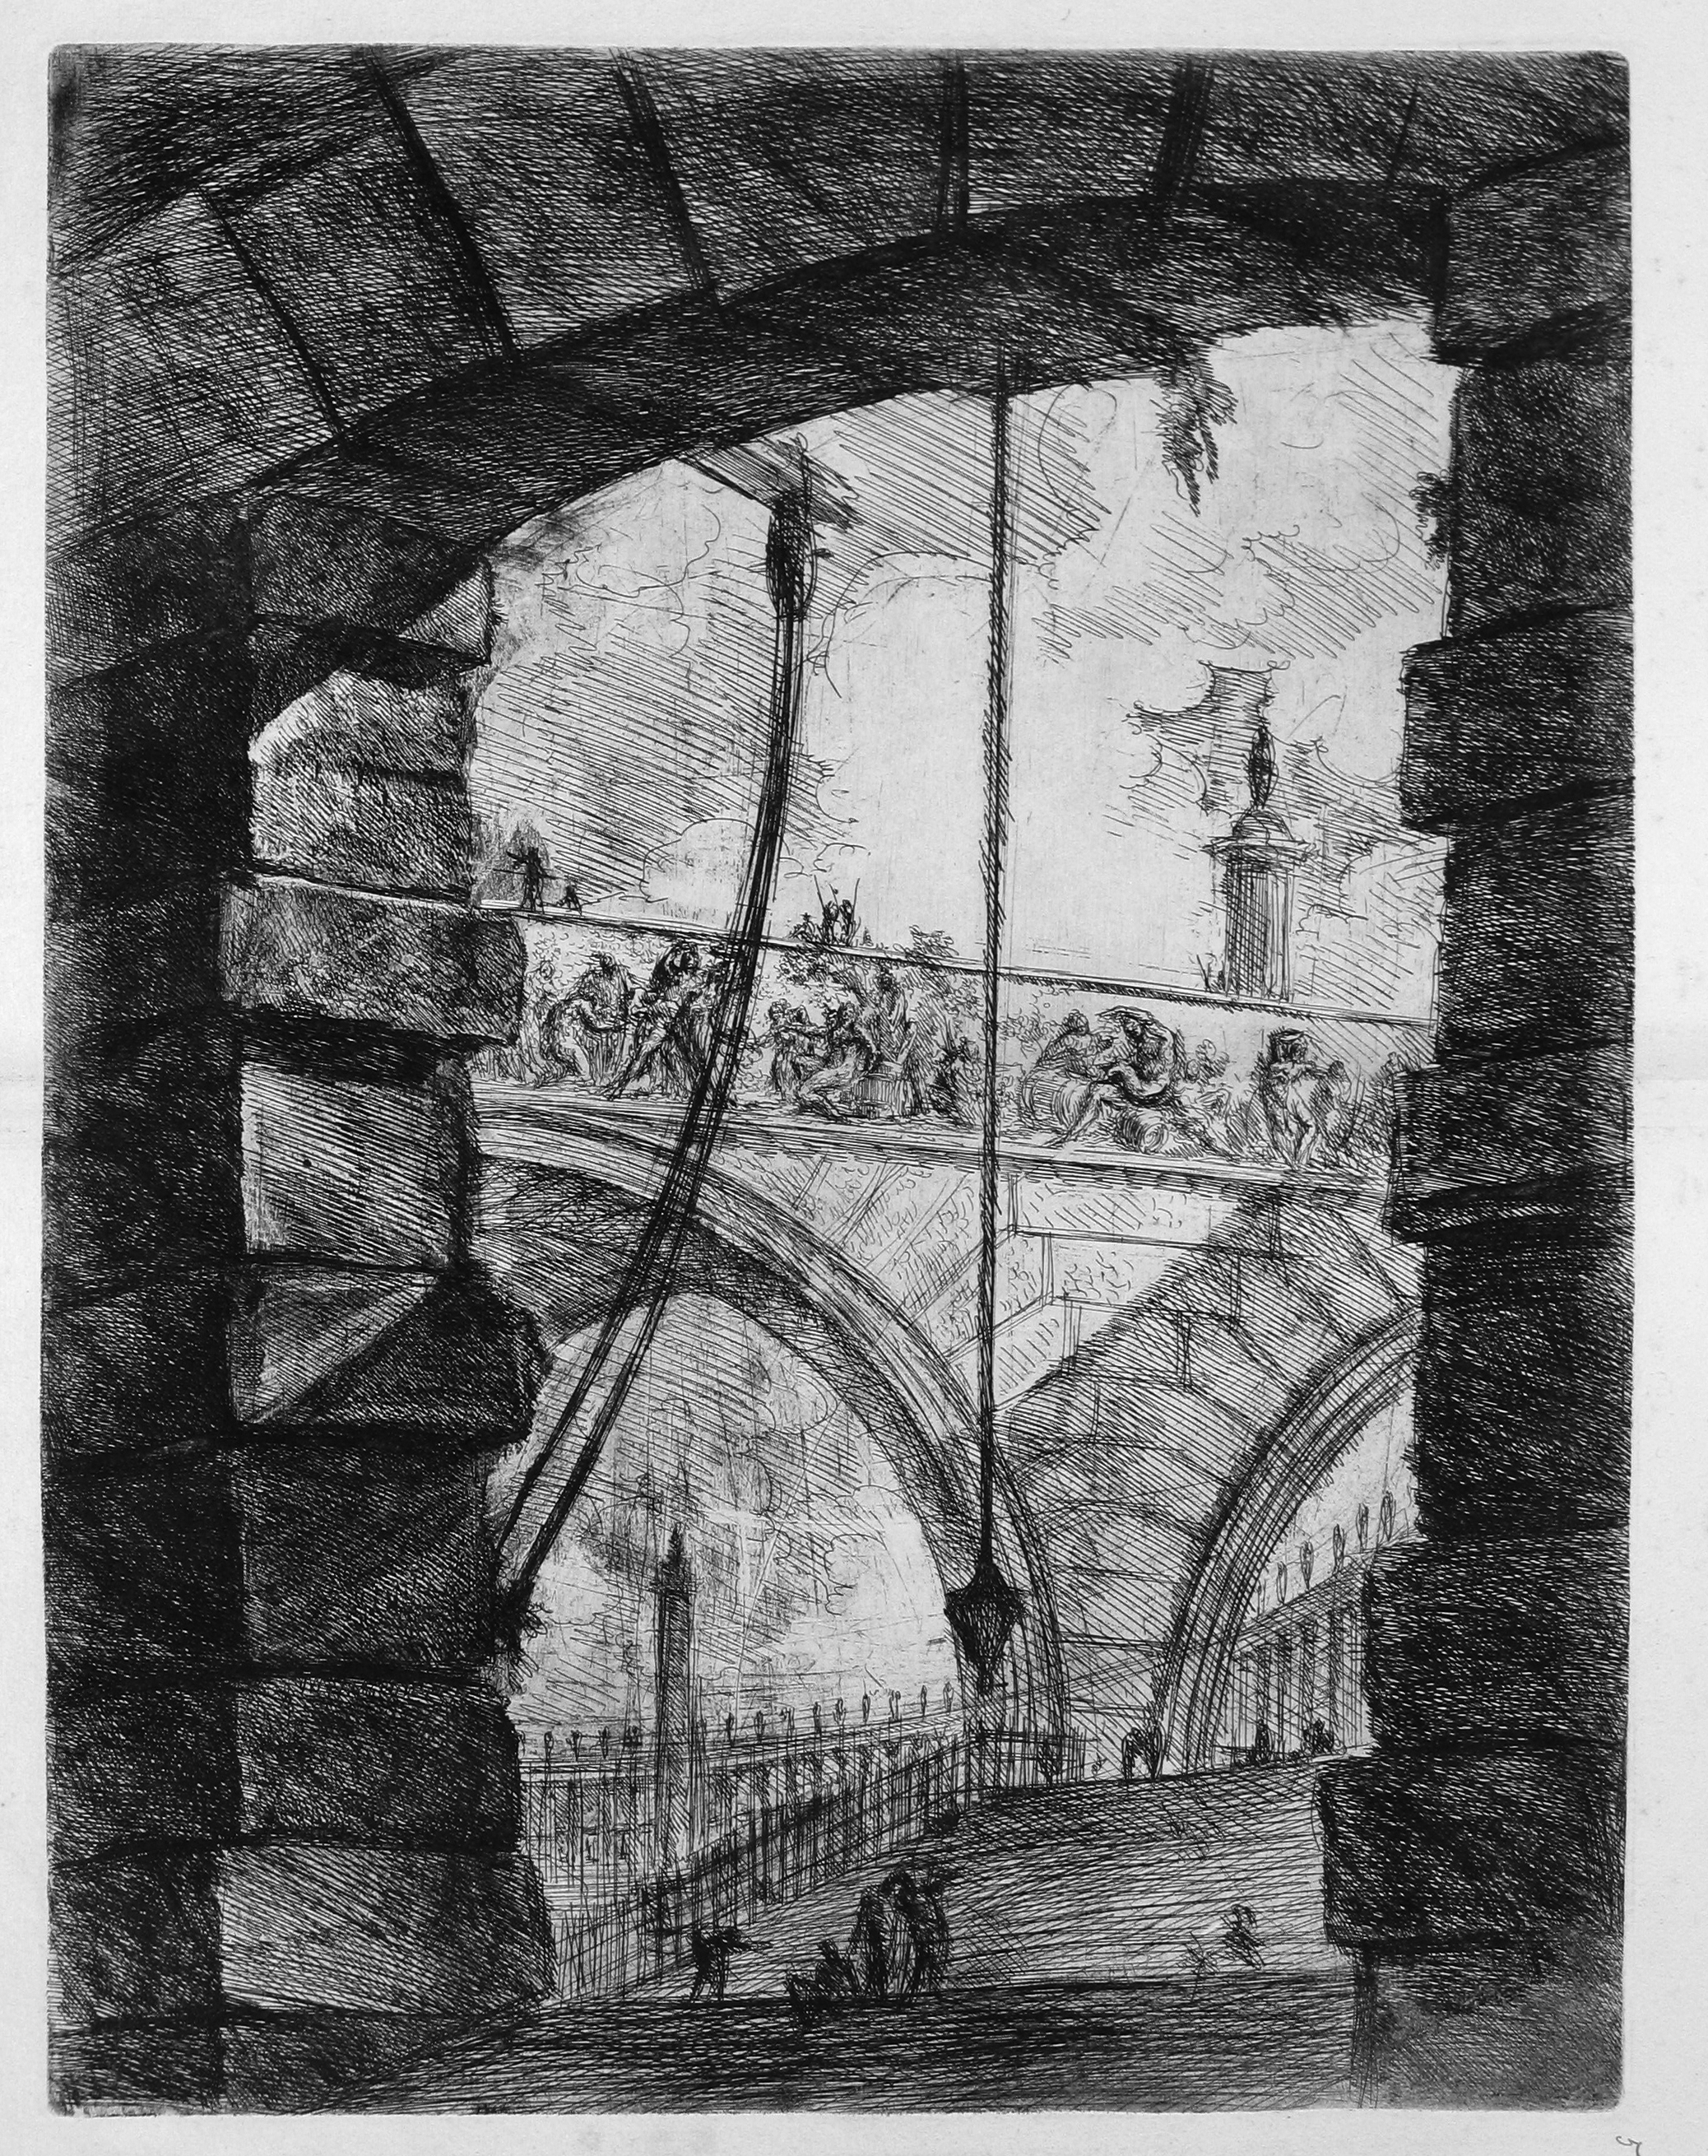 Giovanni_Battista_Piranesi_-_Le_Carceri_d'Invenzione_-_First_Edition_-_1750_-_04_-_The_Grand_P...jpg